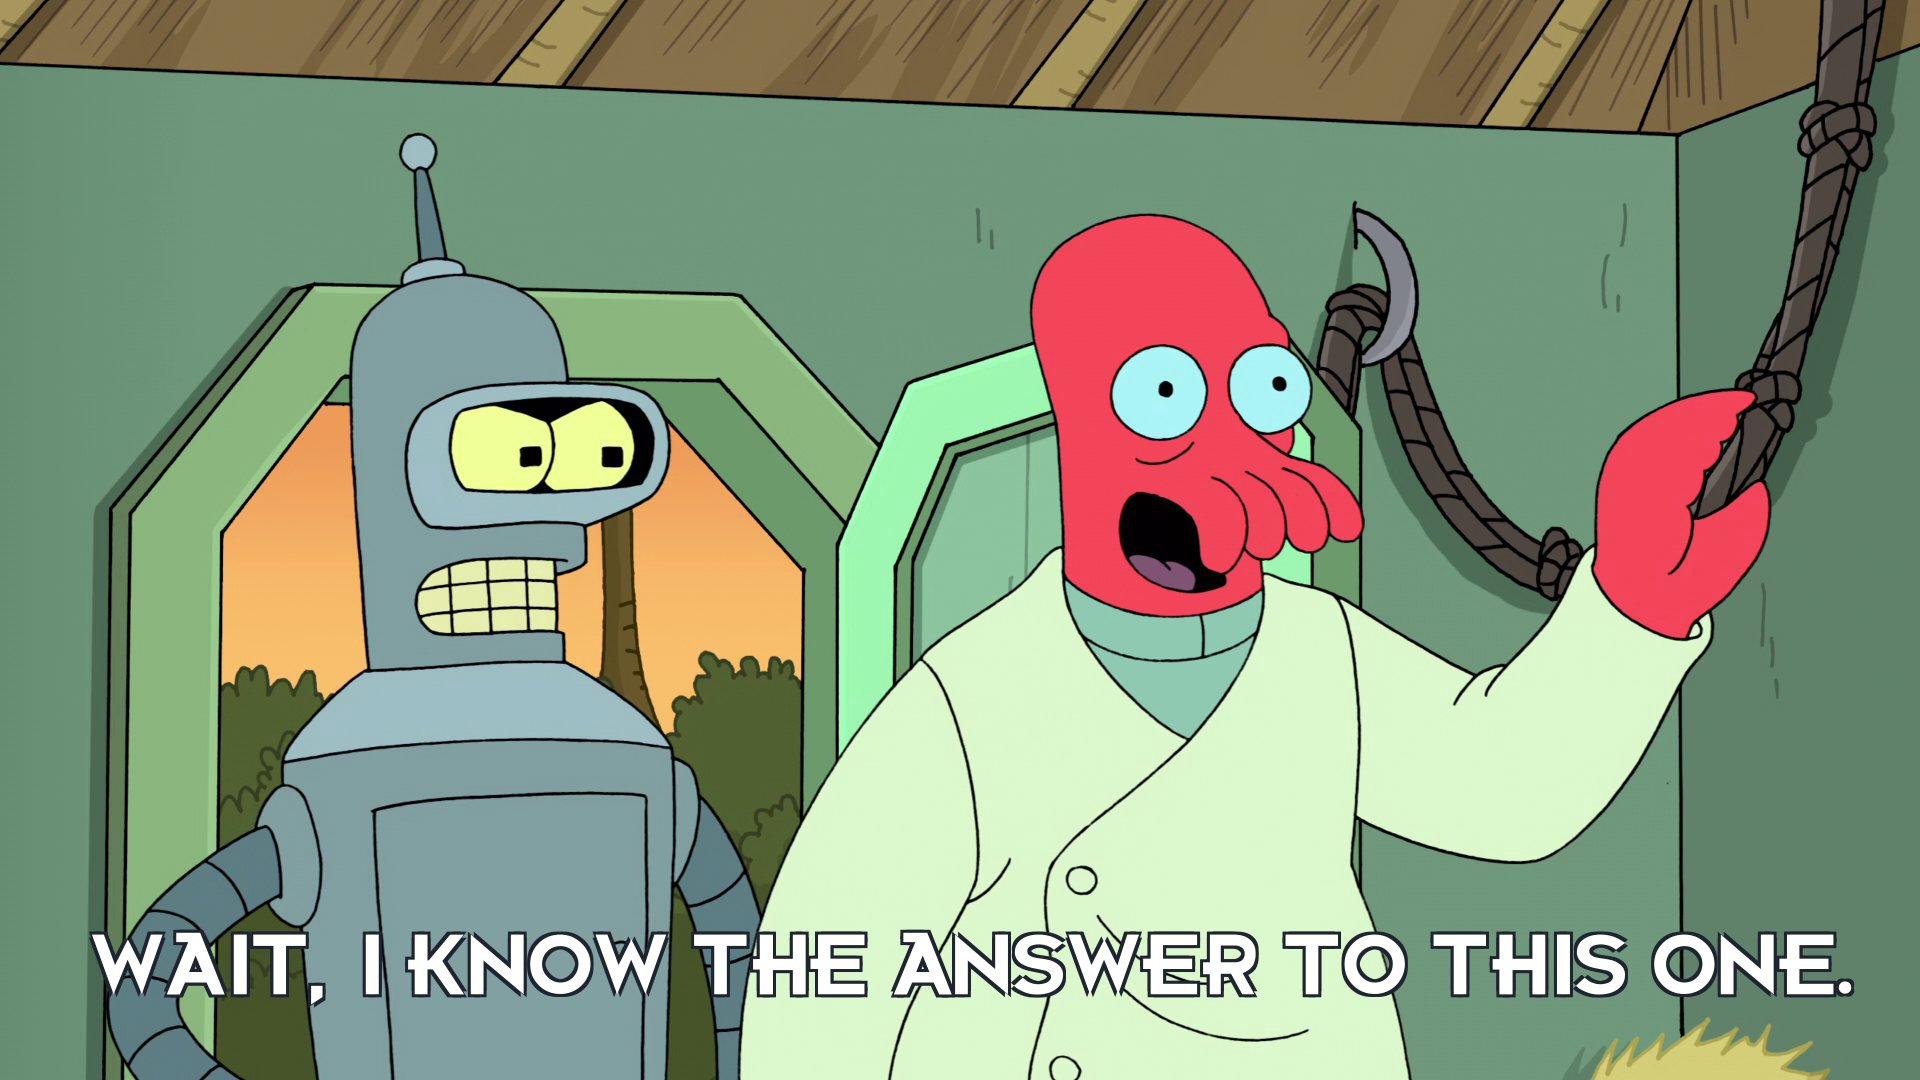 Dr John A Zoidberg: Wait, I know the answer to this one.